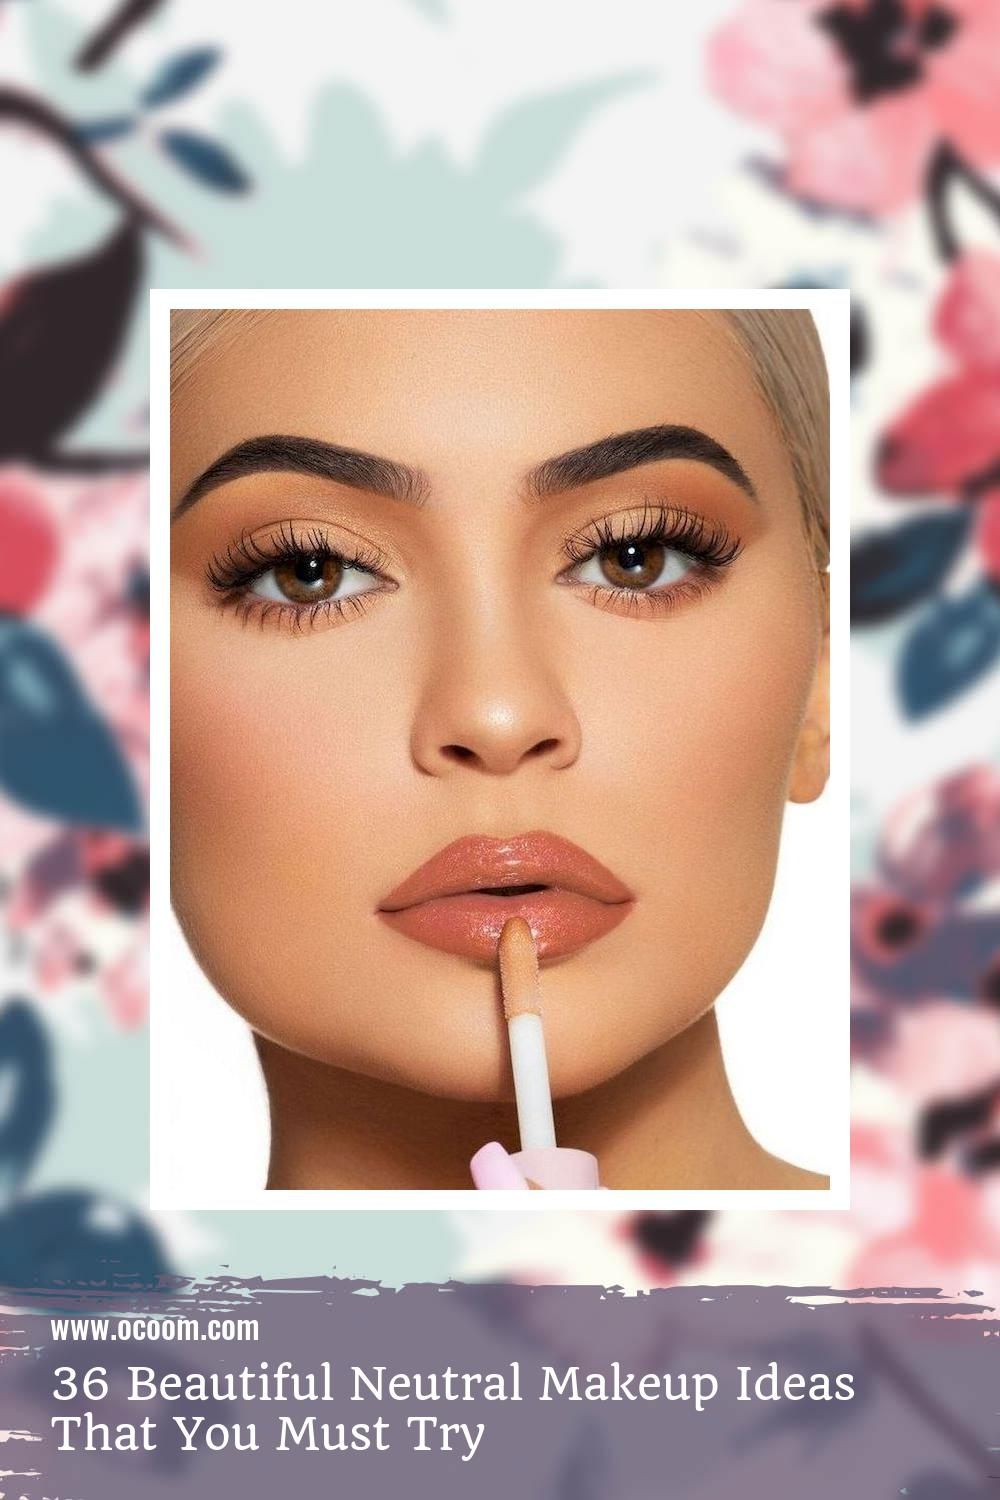 36 Beautiful Neutral Makeup Ideas That You Must Try 24